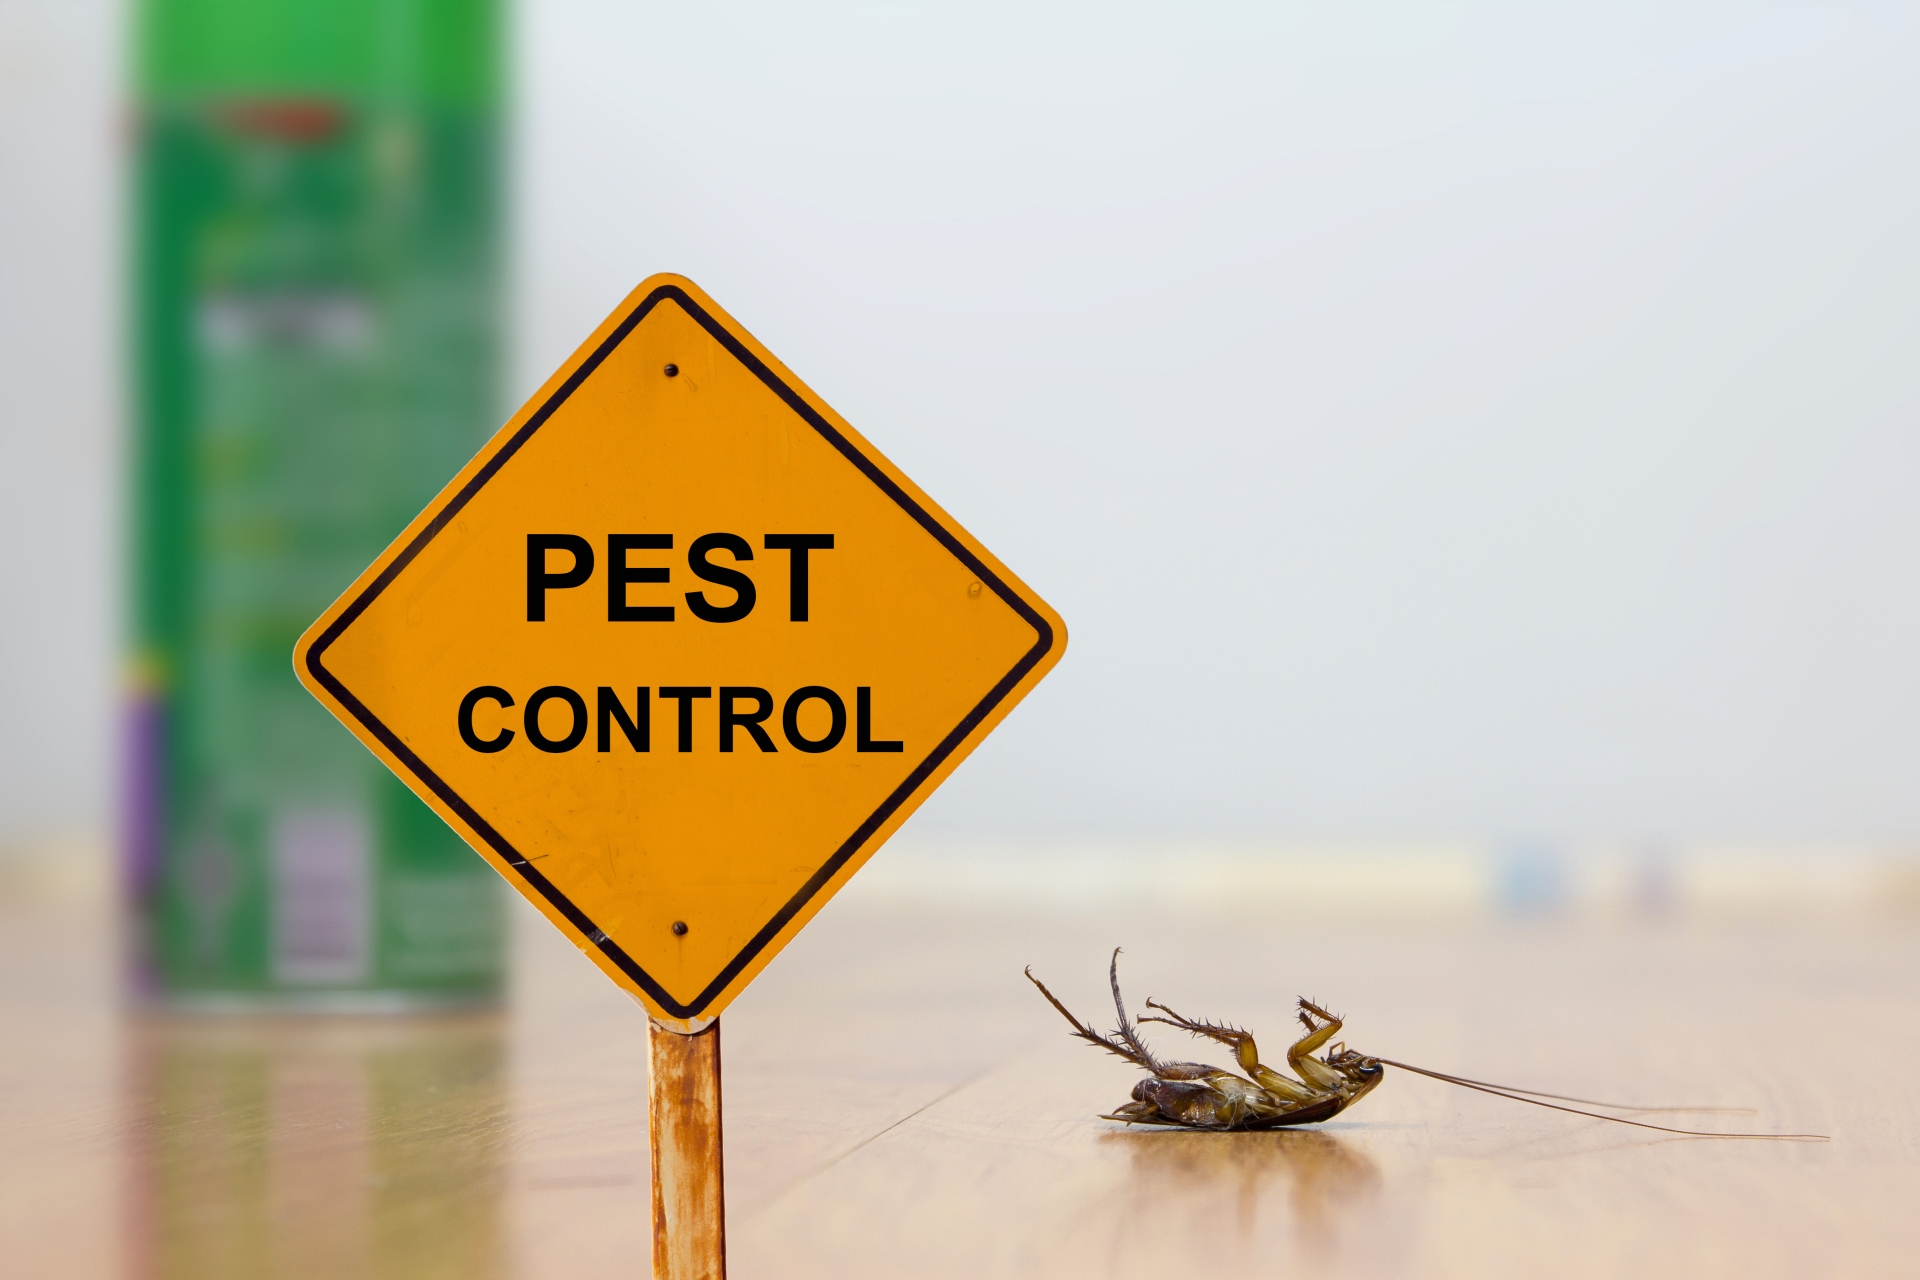 24 Hour Pest Control, Pest Control in Friern Barnet, New Southgate, N11. Call Now 020 8166 9746